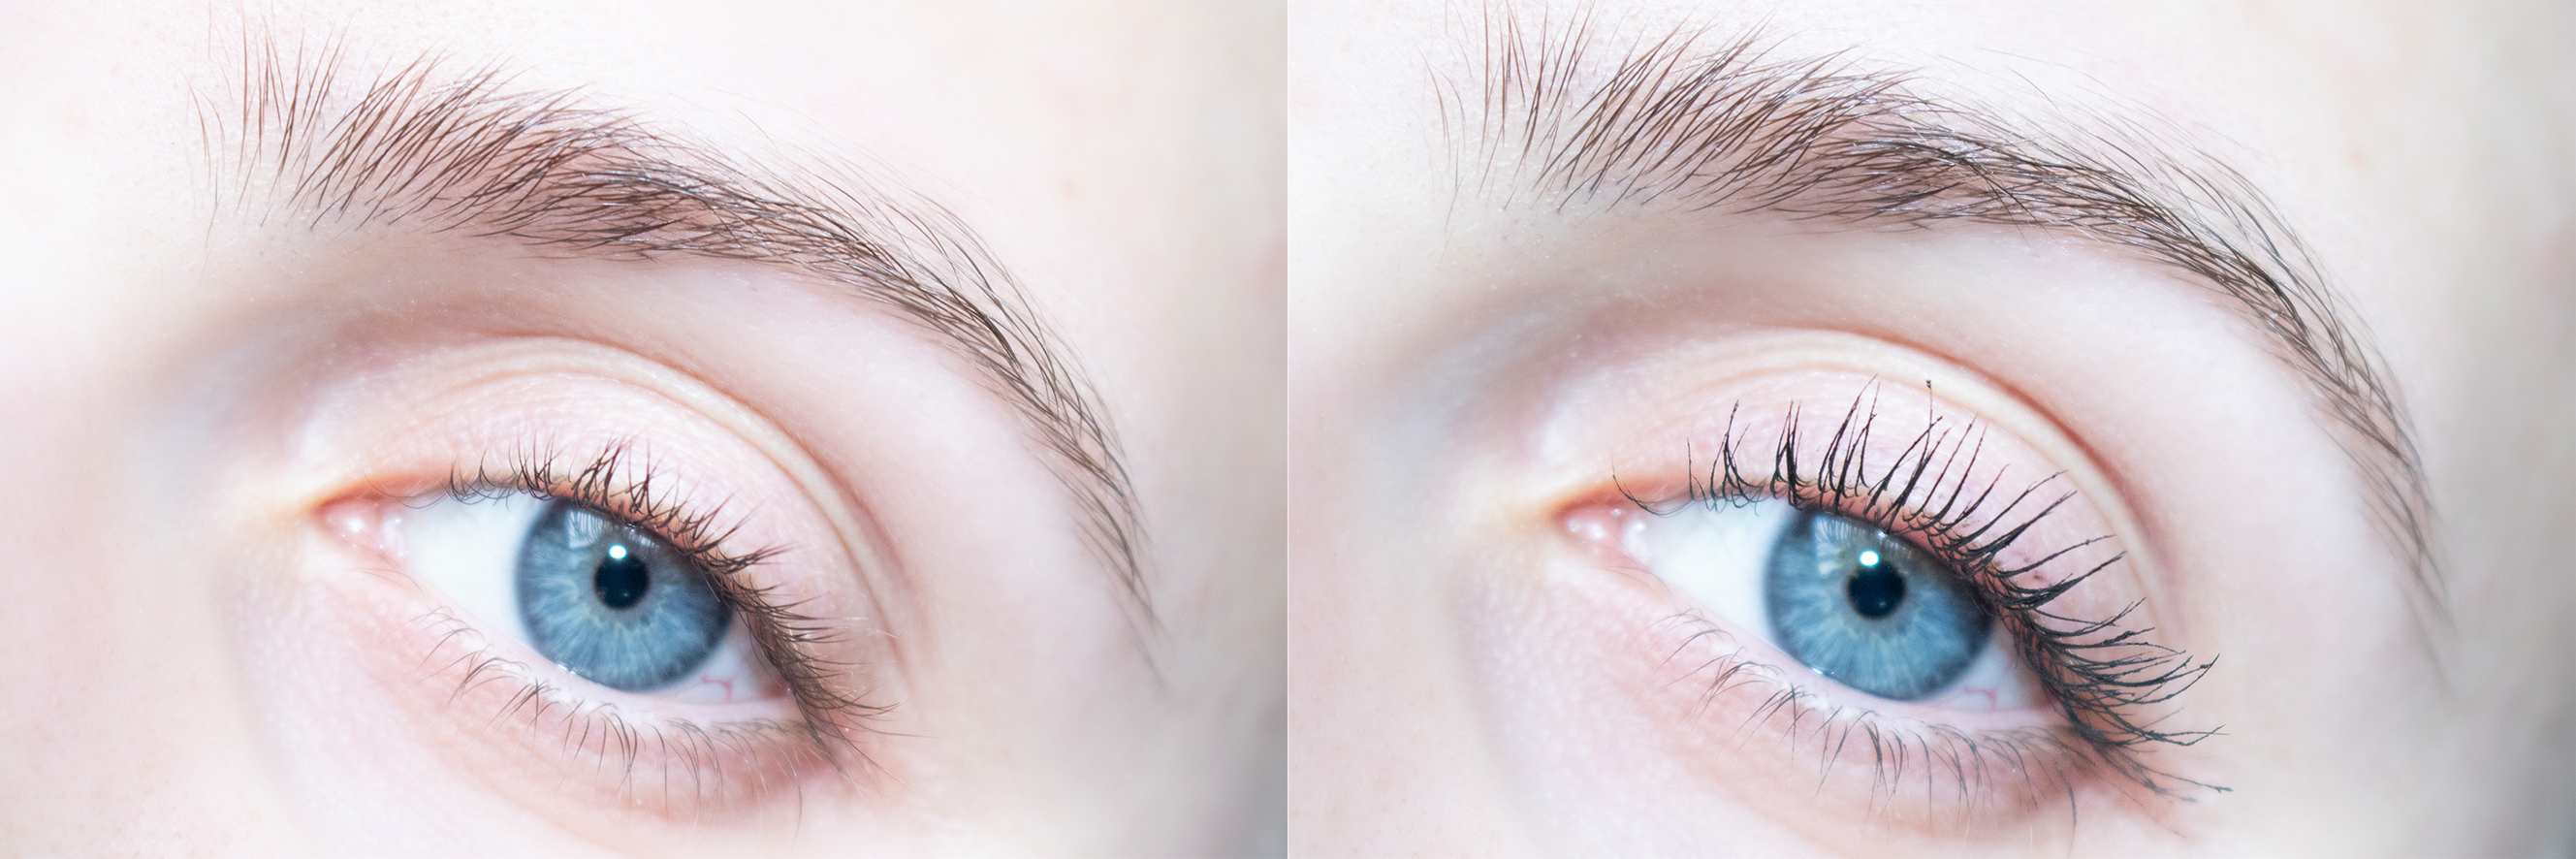 mineralissima review mascara effect